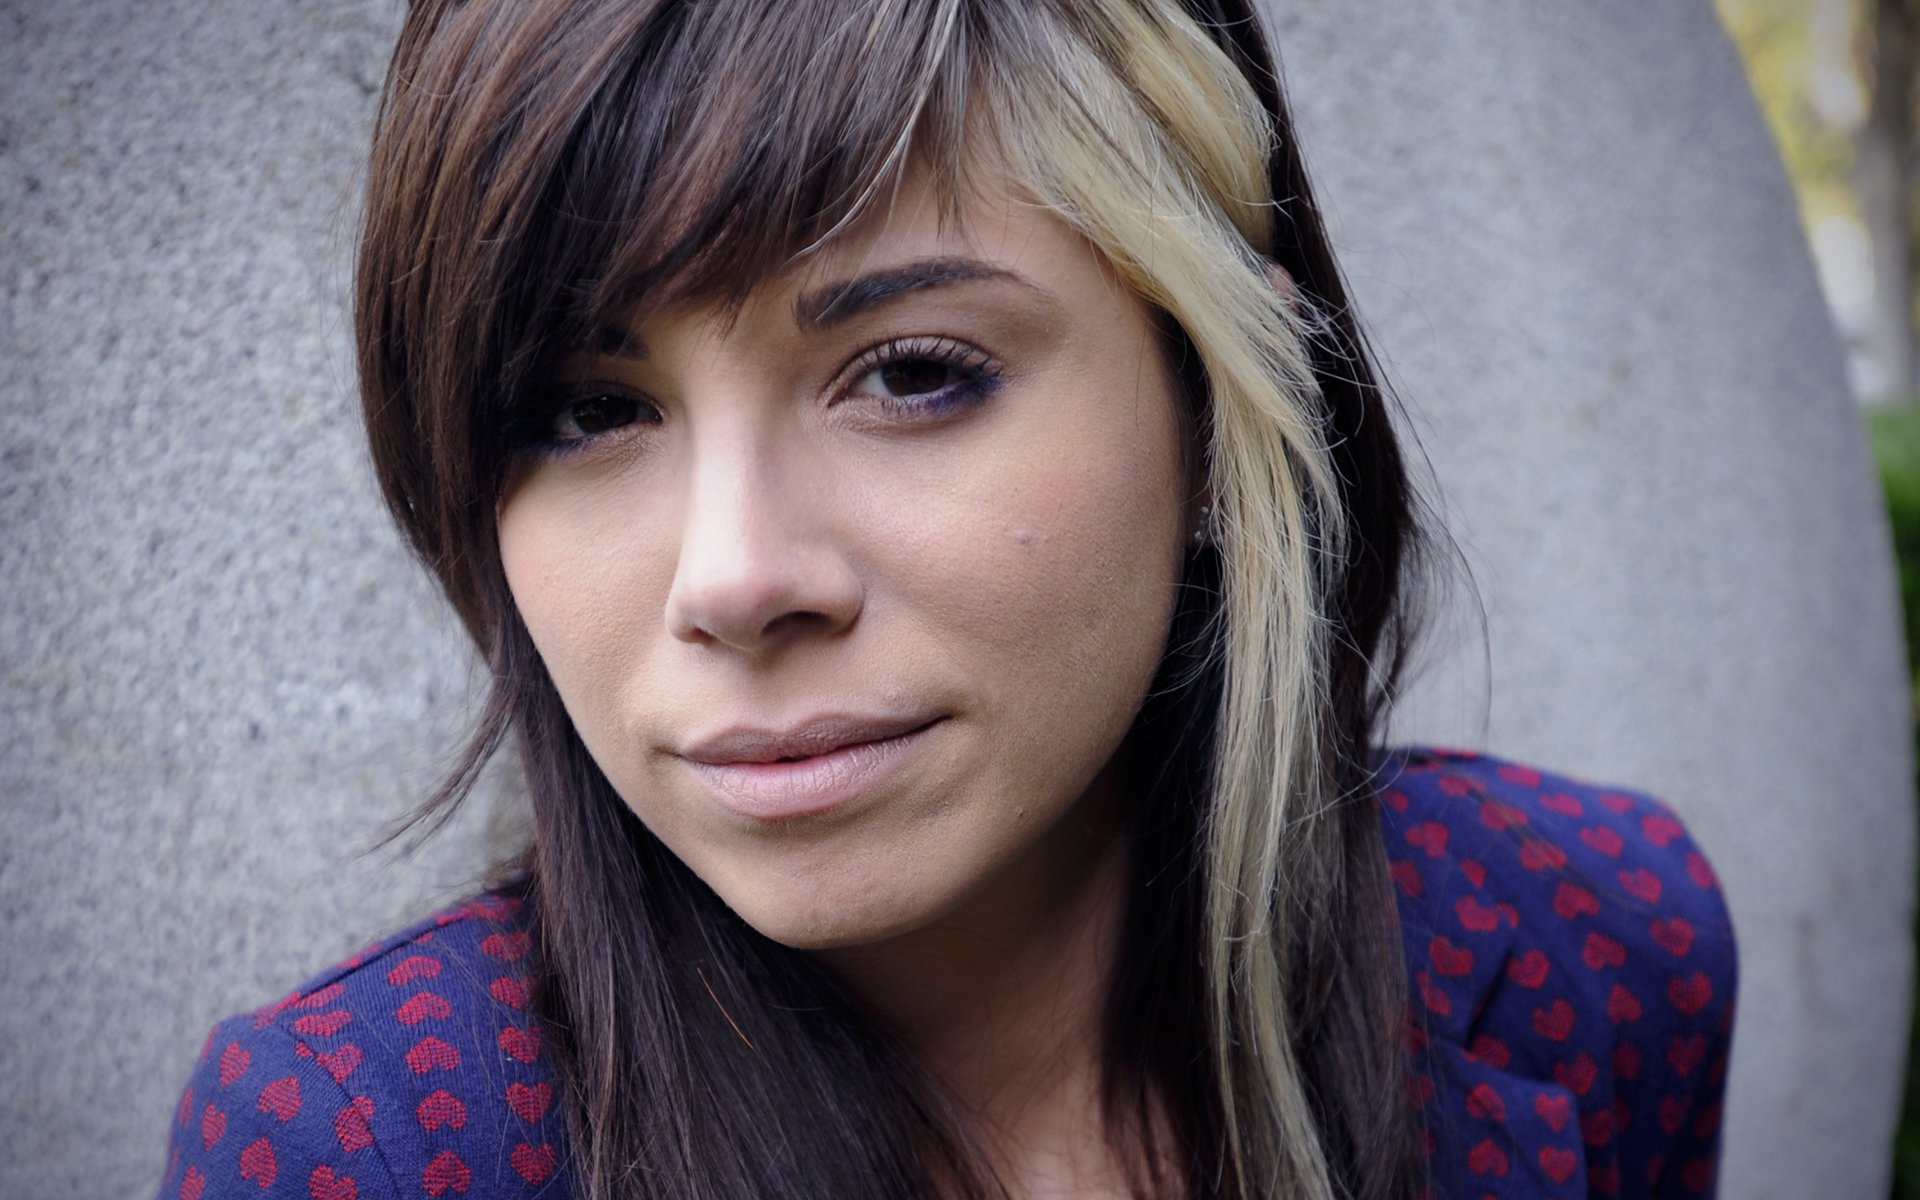 During the summer of 2010, Christina Perri — a 23-year-old café waitress who'd been moonlighting as an unsigned songwriter — went from obscurity to the ...